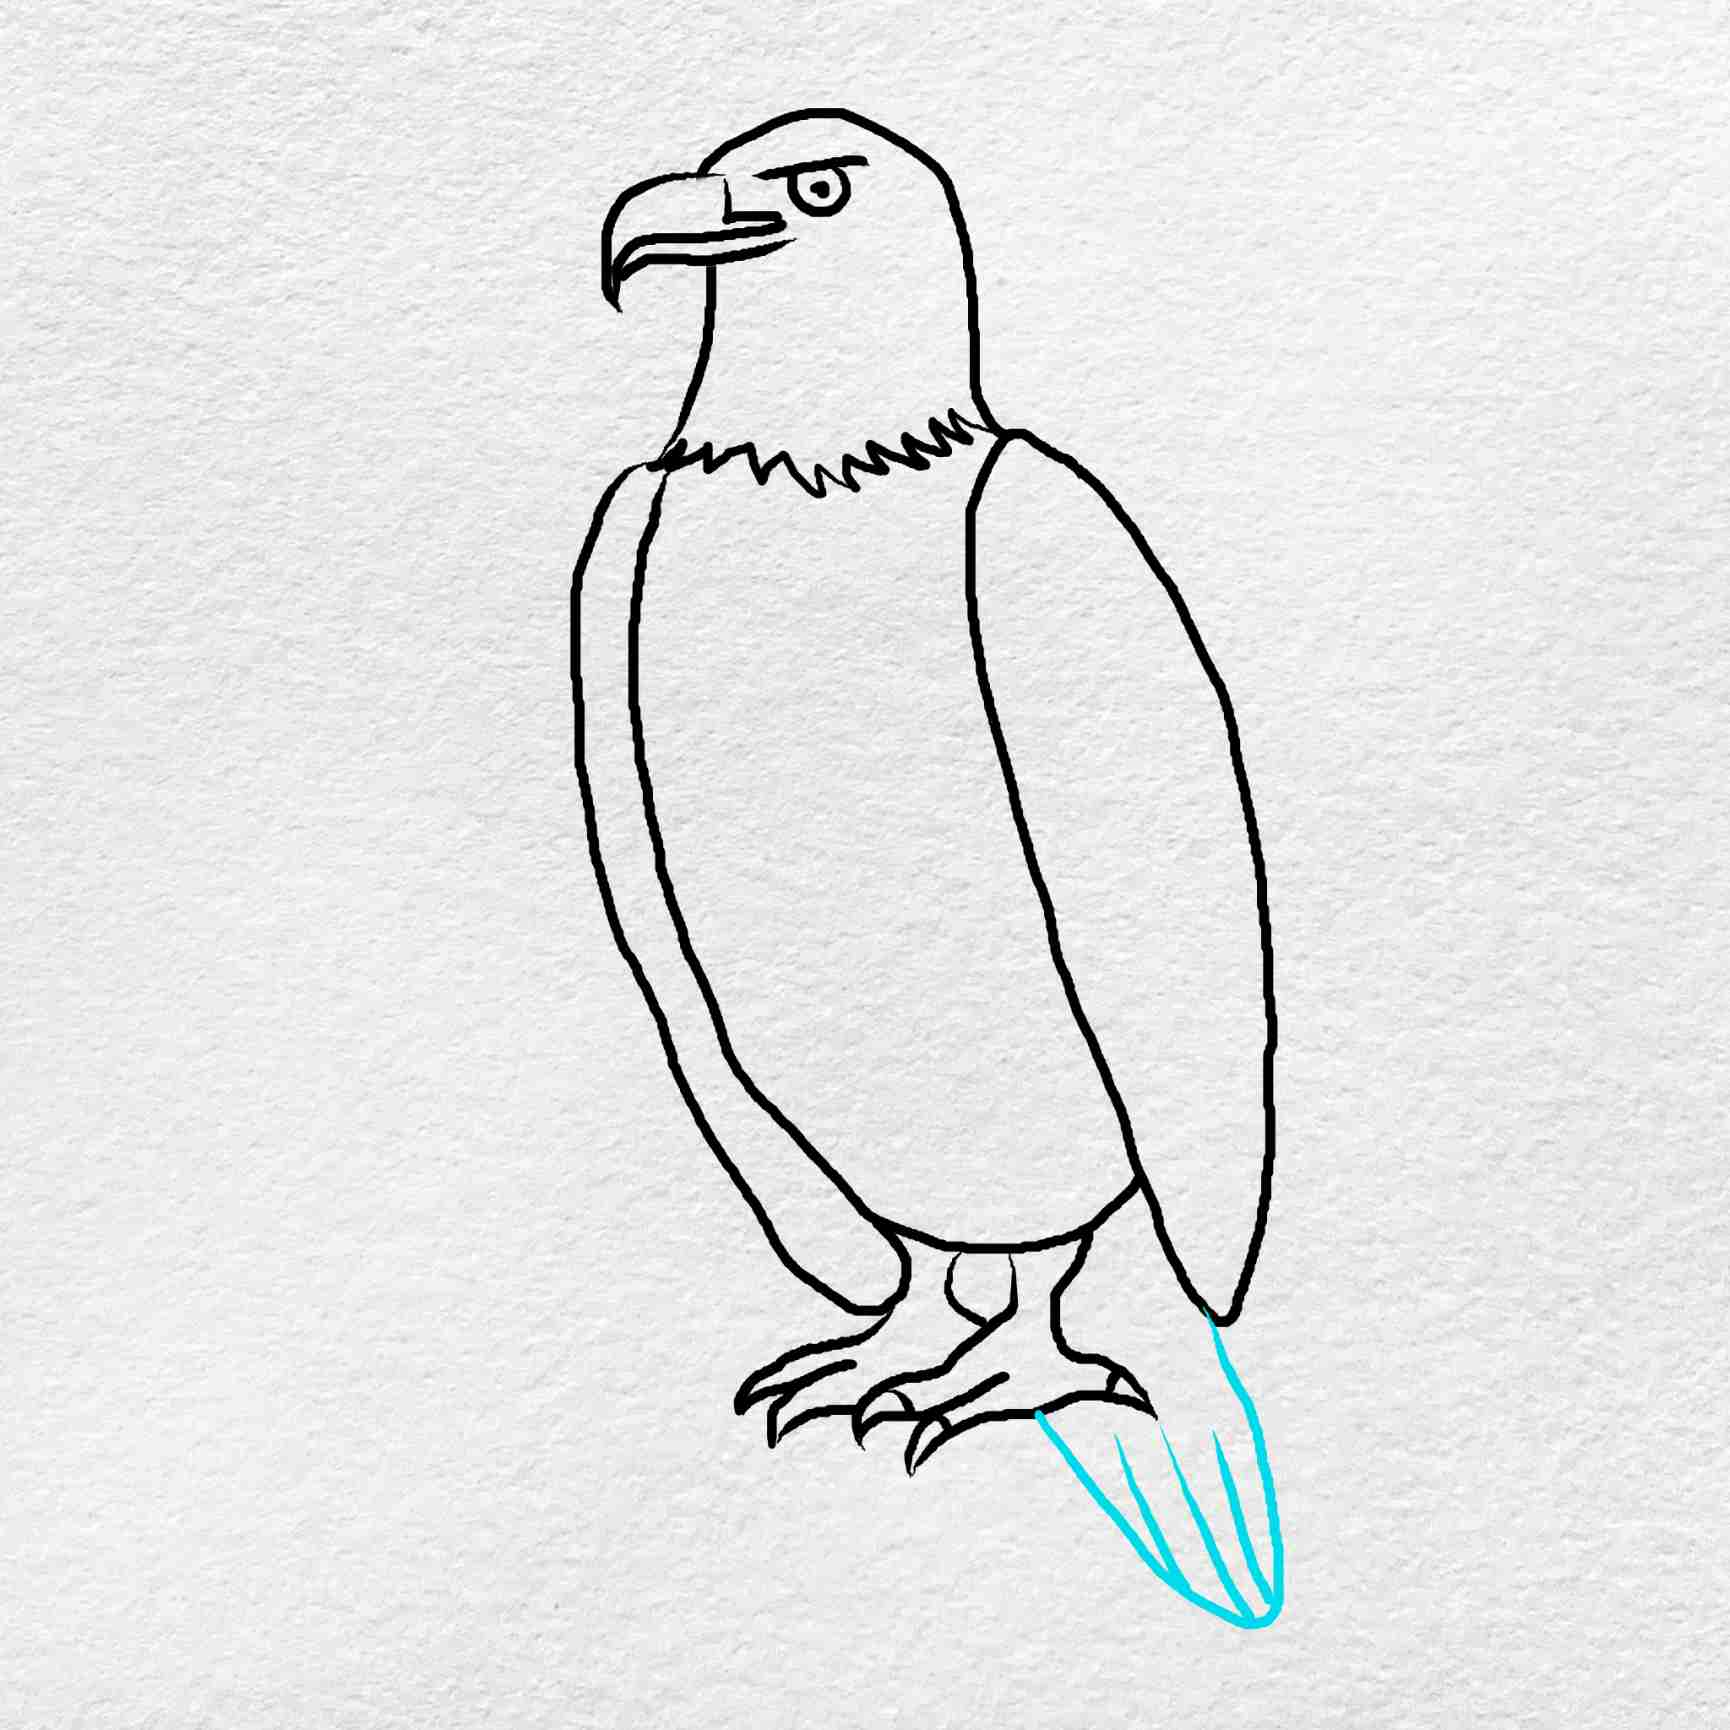 How To Draw An Eagle Easy: Step 8